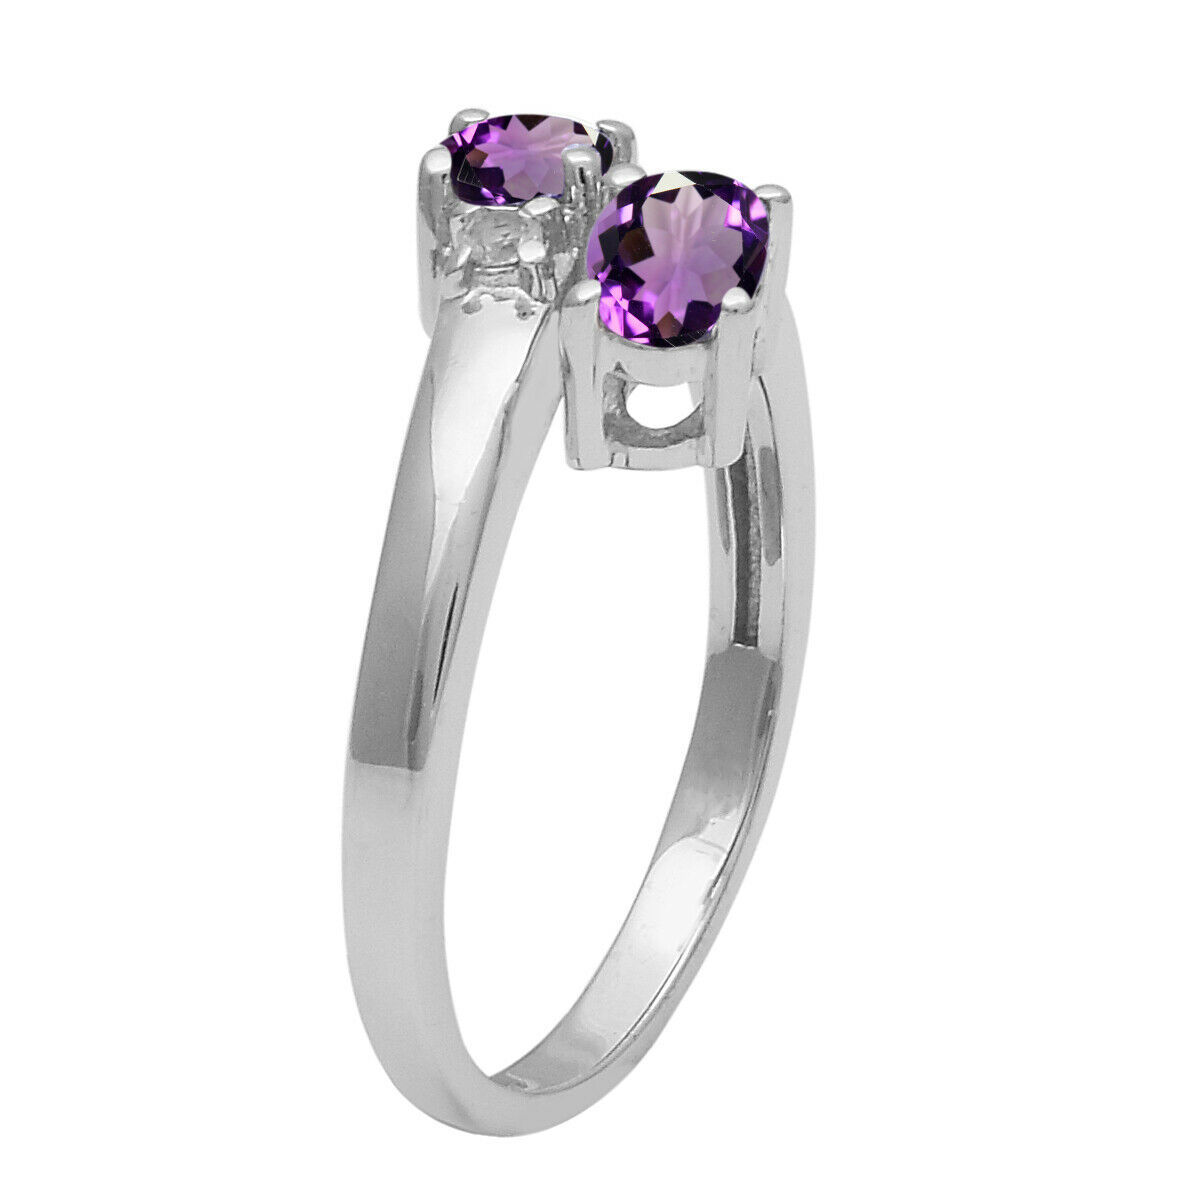 Primary image for Solid 925 Sterling Silver 0.86 Ctw Amethyst Dual Gemstone Stackable Wedding Ring